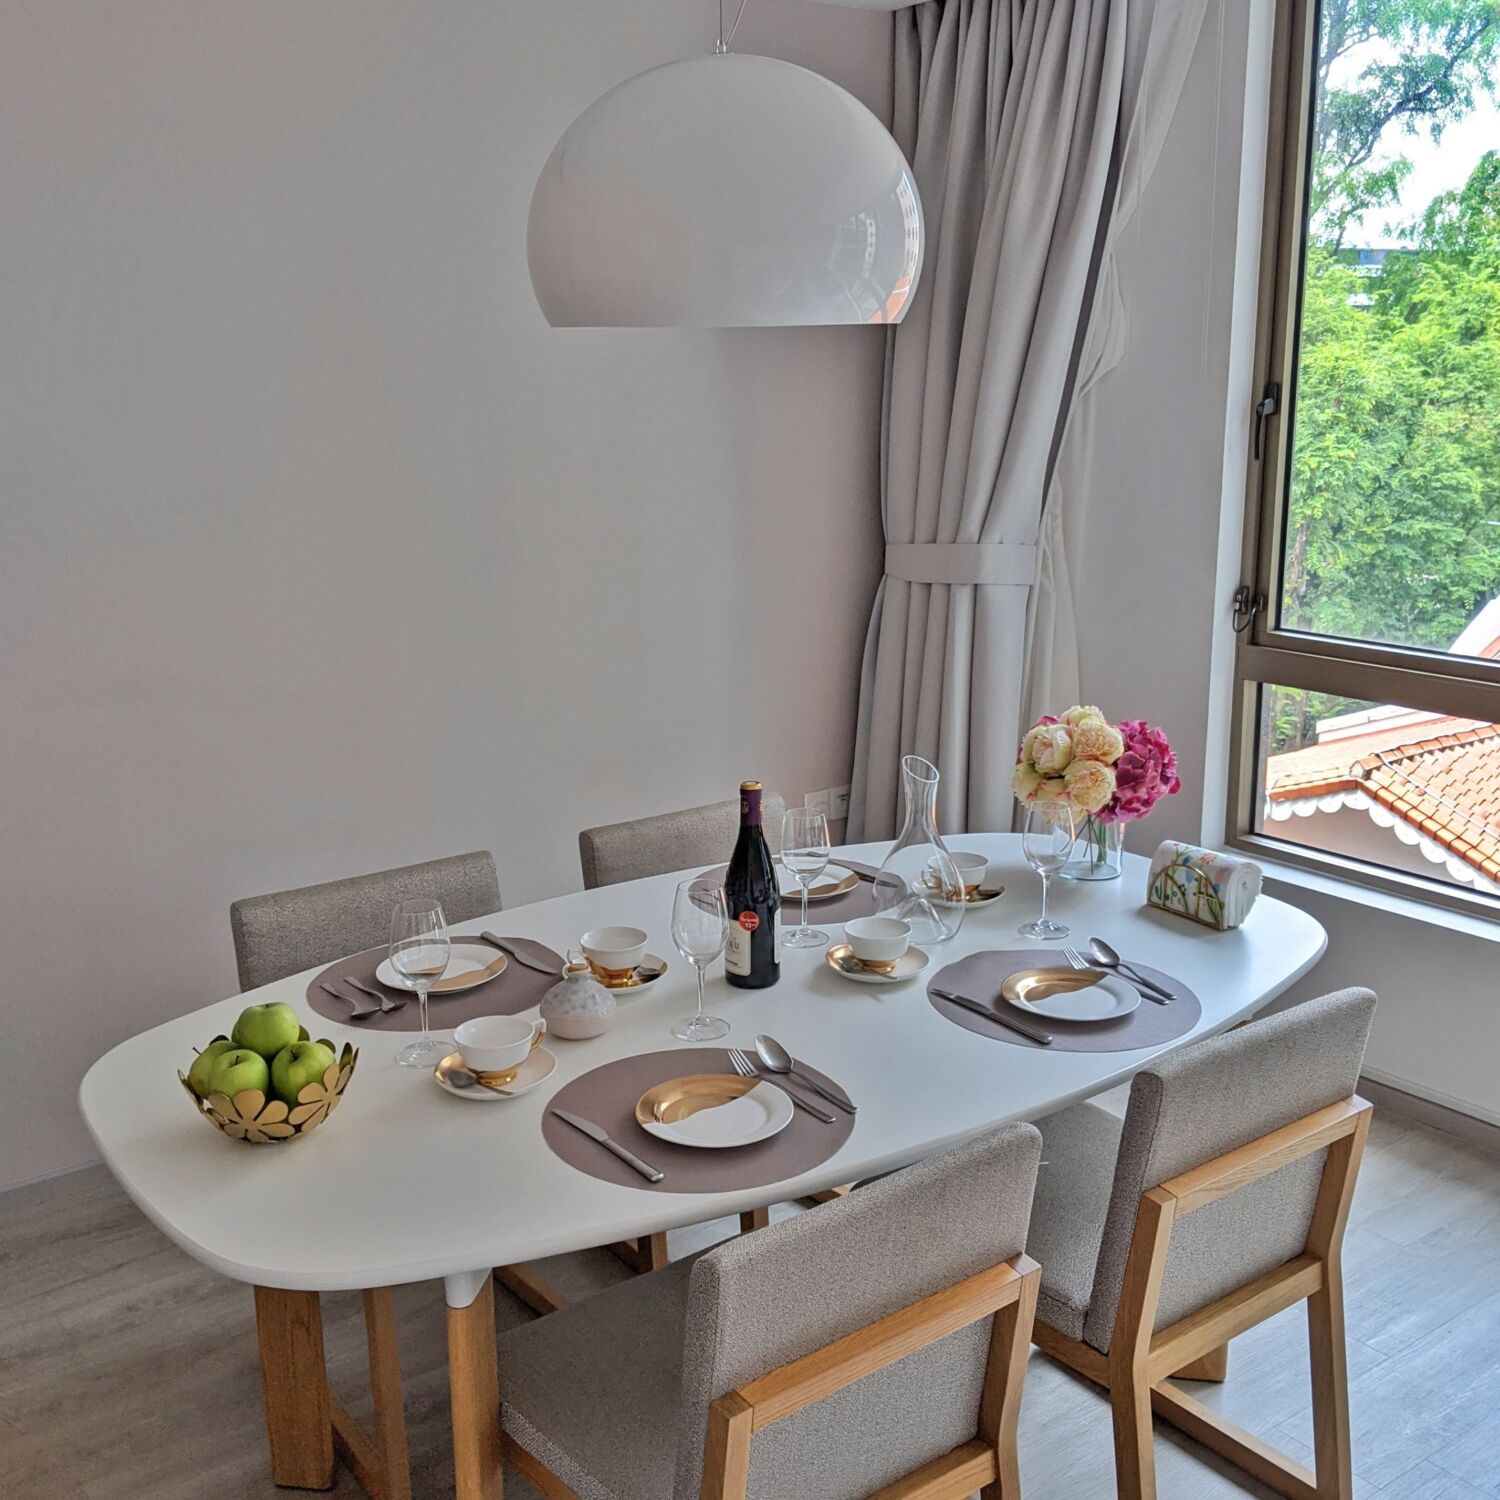 Winsland Serviced Suites by Lanson Place Two-Bedroom Executive Suite Dining Area